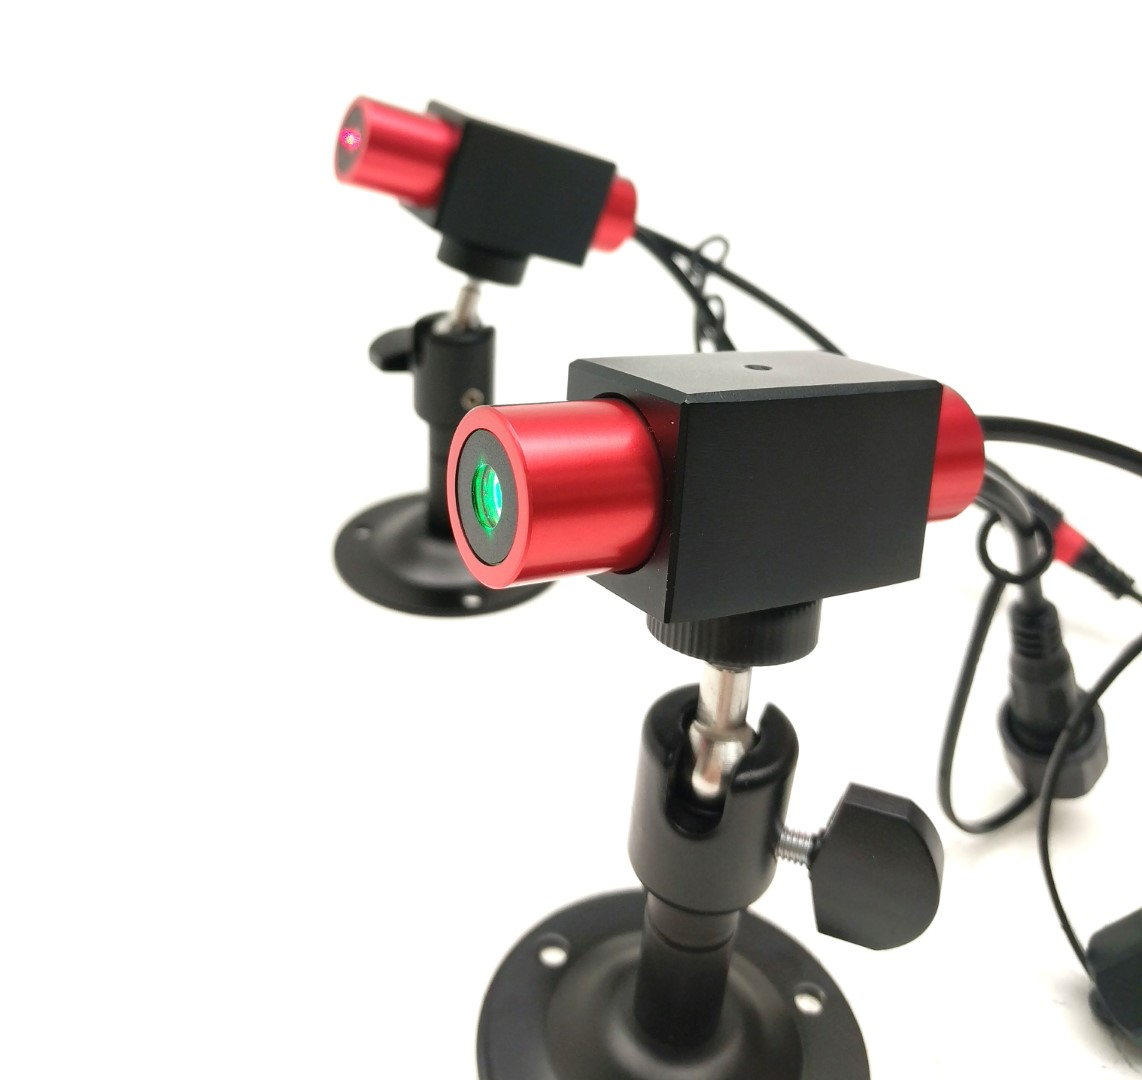 20 mW 635 nm Red Premium Structured Line No Central Dot Laser, 30° fan angle, adjustable focus, TTL+, Sealed IP67